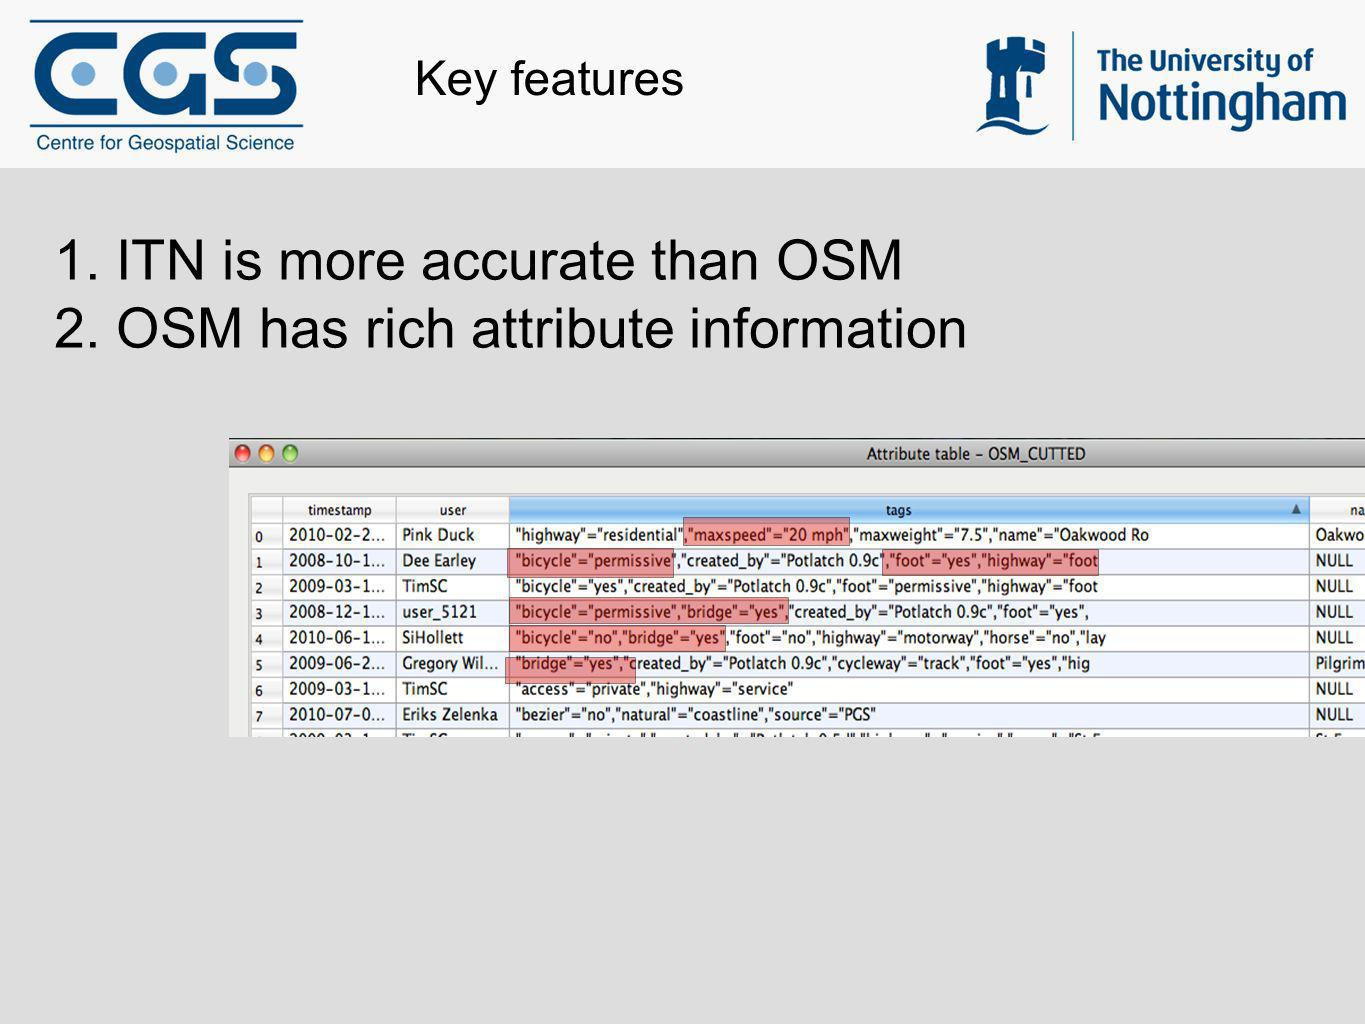 1. ITN is more accurate than OSM 2. OSM has rich attribute information